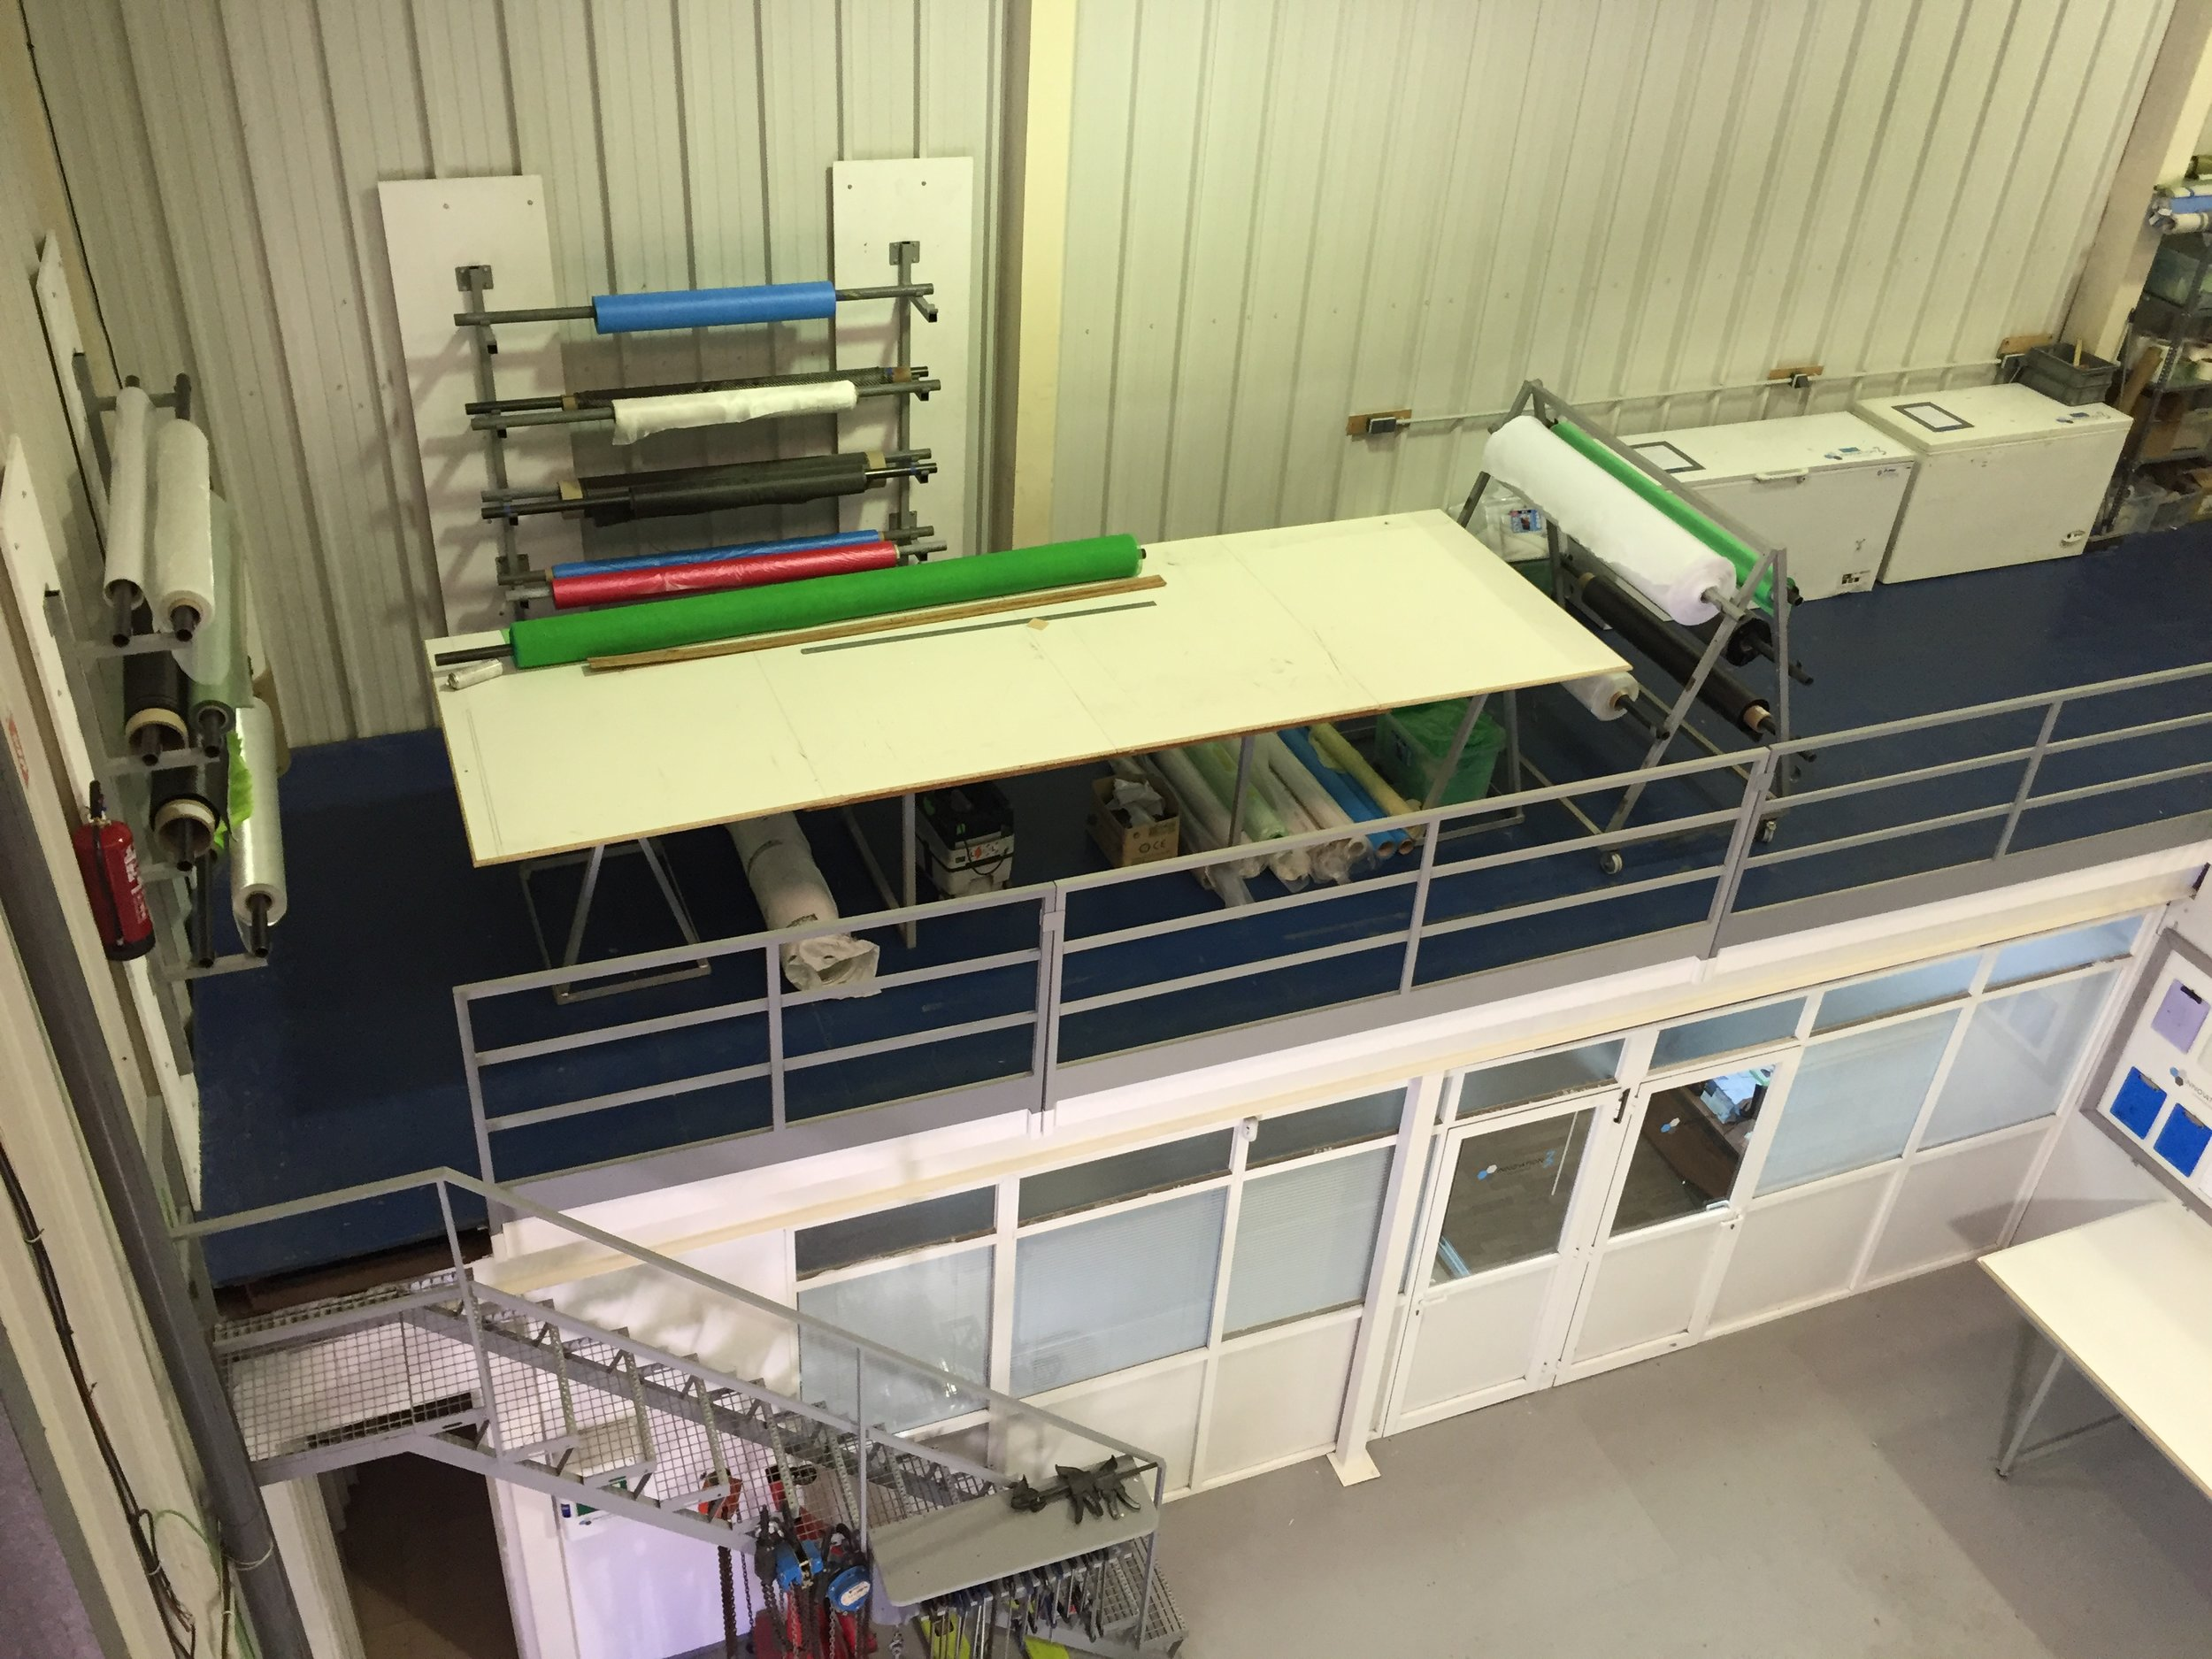 Cloth / consumable cutting table, offices below